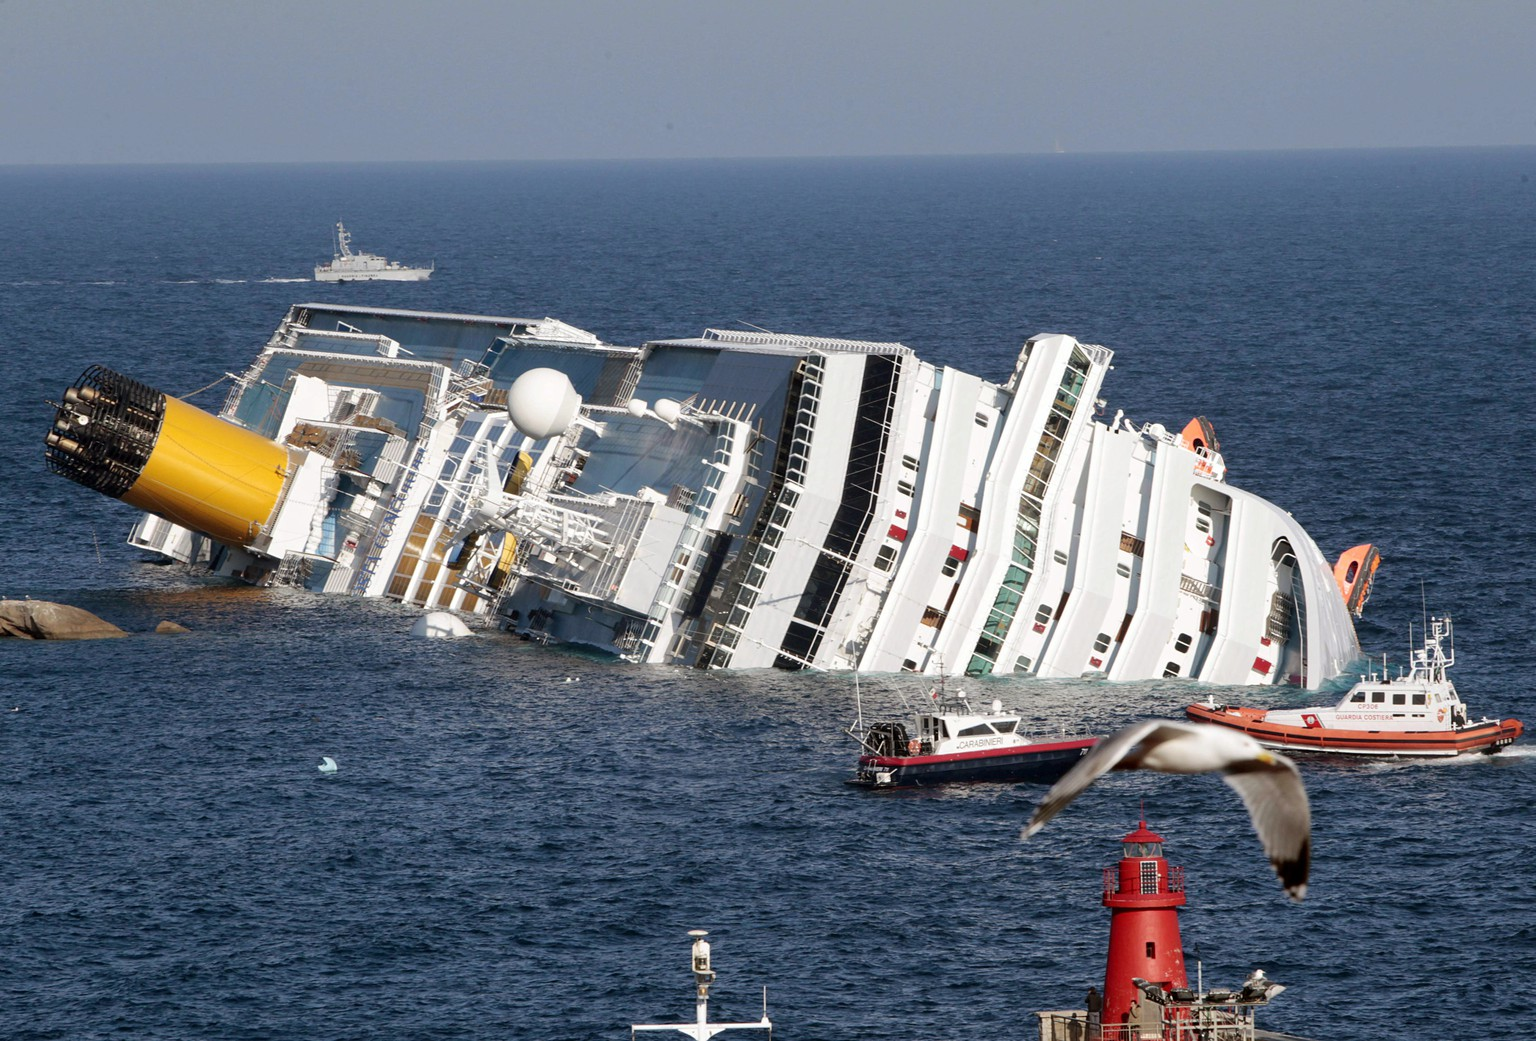 FILE -- In this file photo taken on Jan. 14, 2012, the luxury cruise ship Costa Concordia lays on its side after running aground the tiny Tuscan island of Giglio, Italy. A prosecutor in the trial for the shipwreck of the Costa Concordia contends that 32 people died not because the luxury cruise liner crashed into a reef, but due to